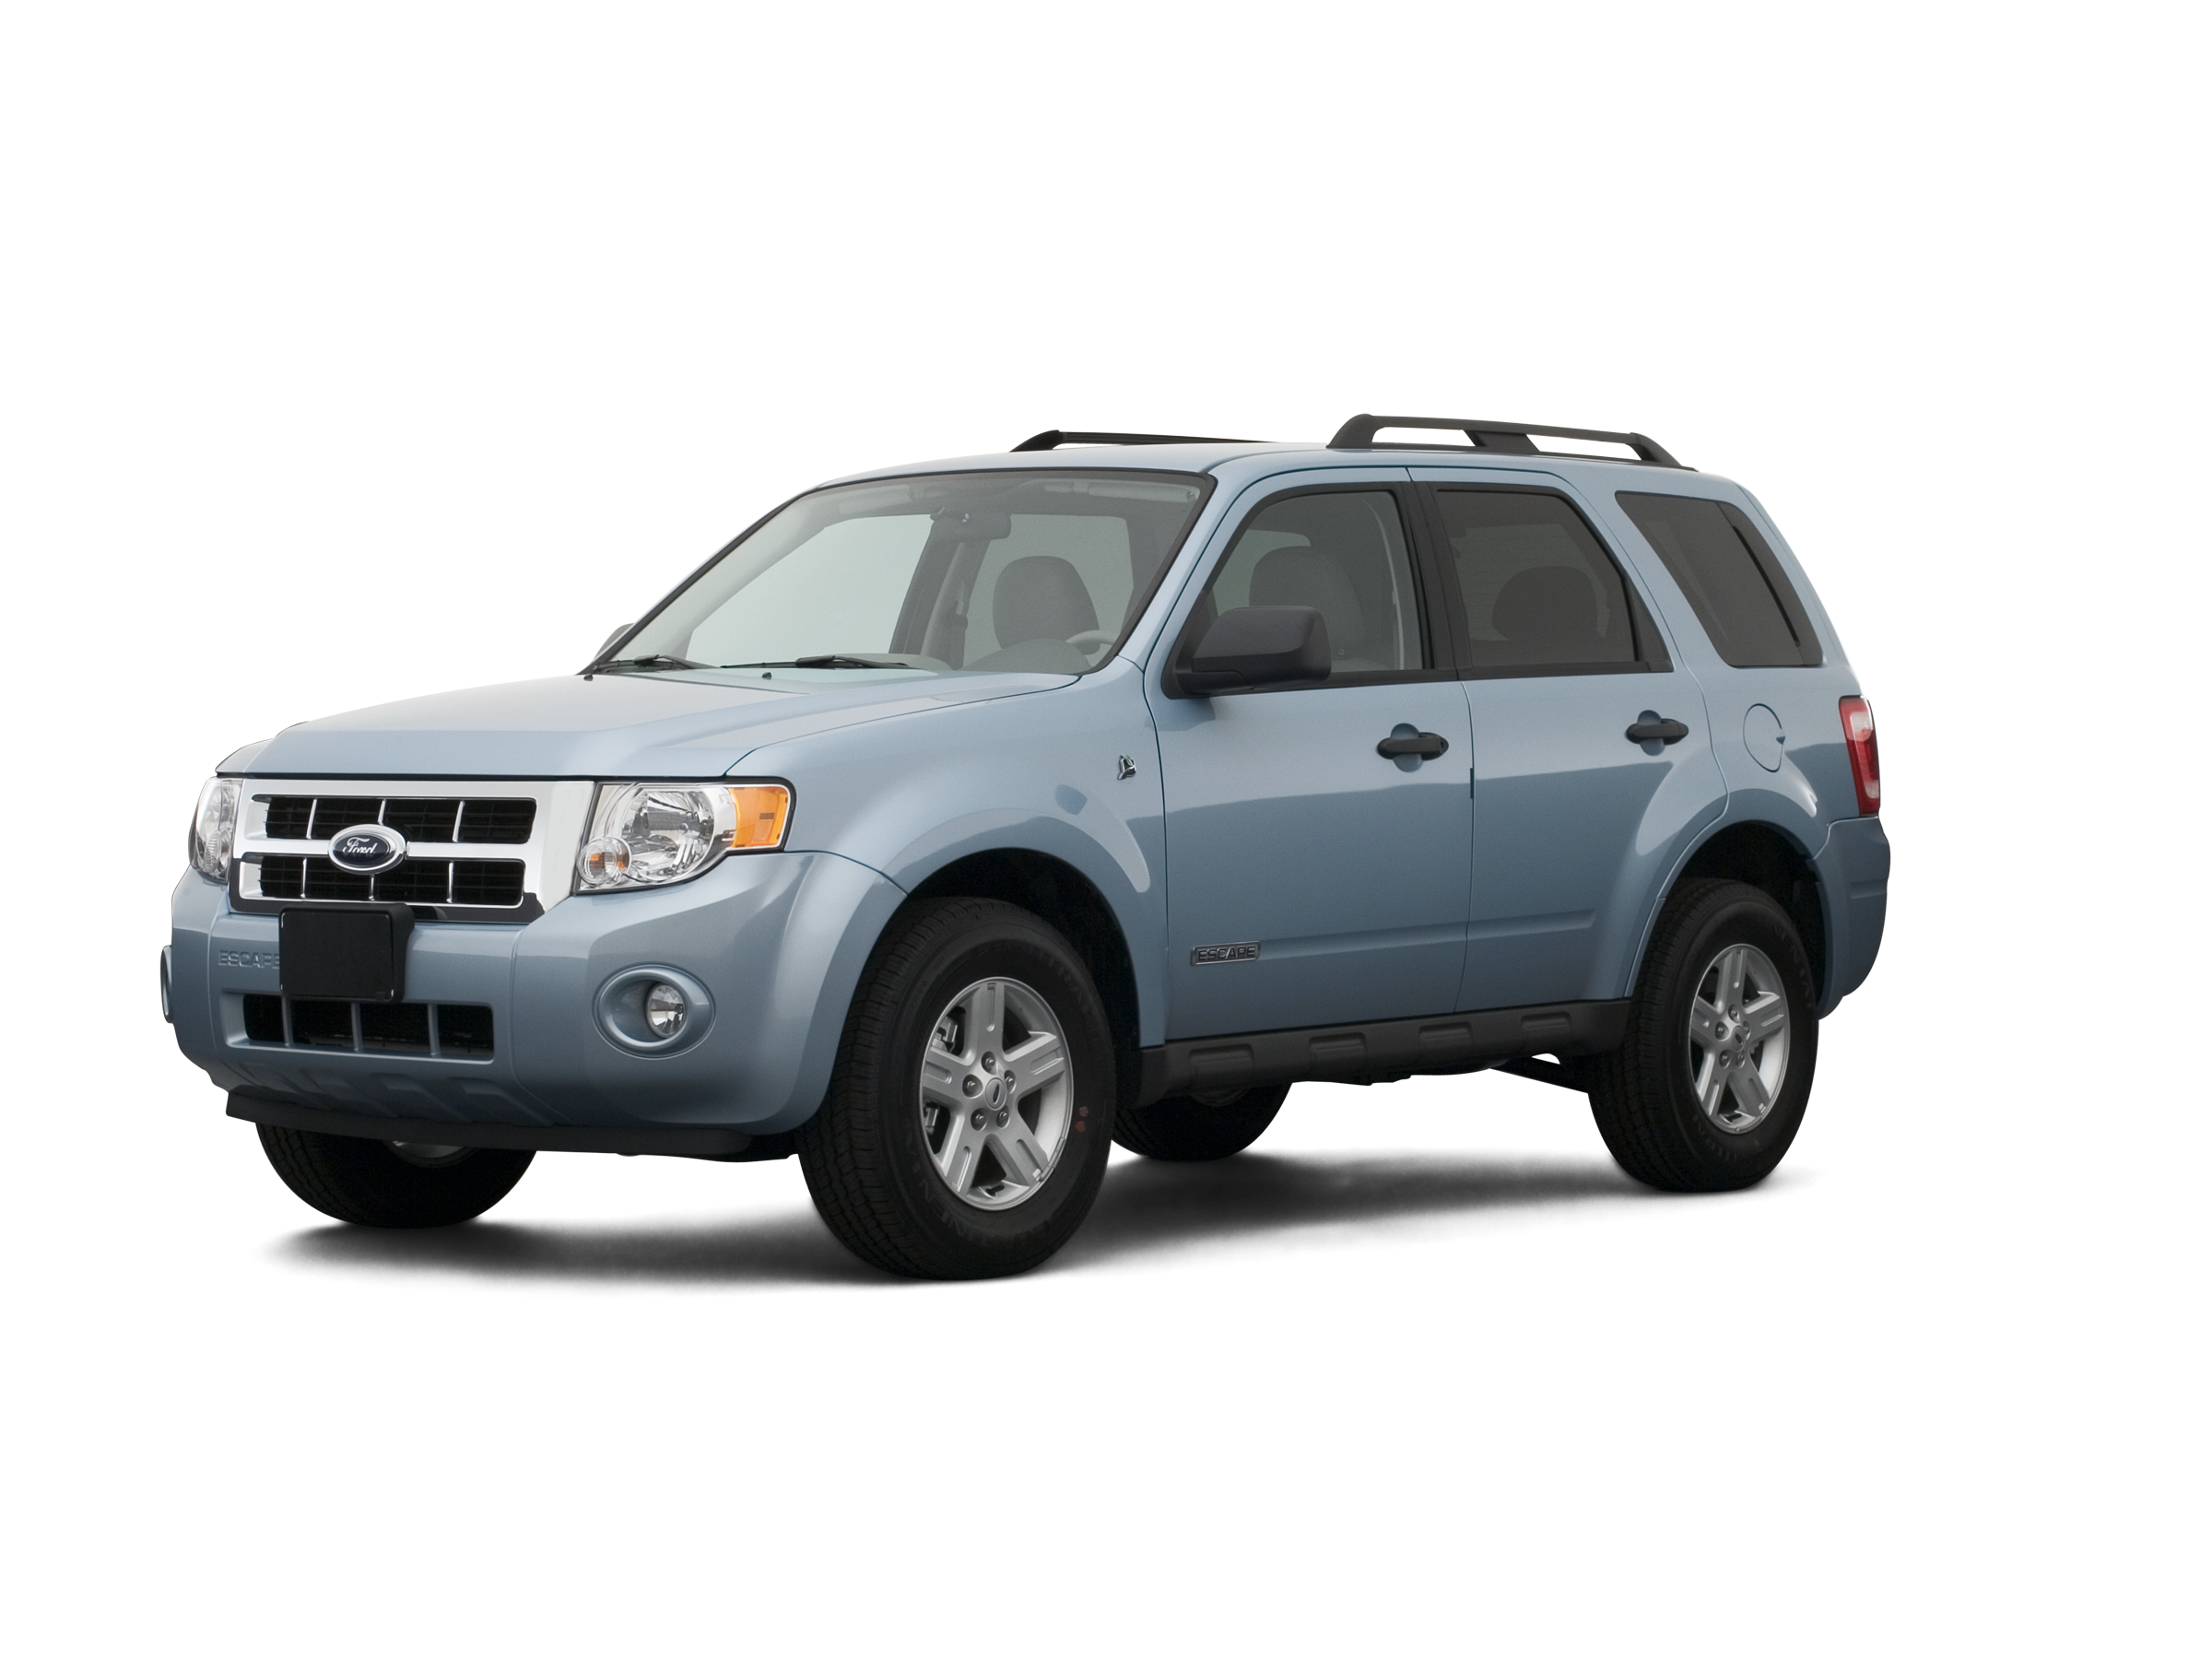 2008 Ford Escape Values Cars For Sale Kelley Blue Book